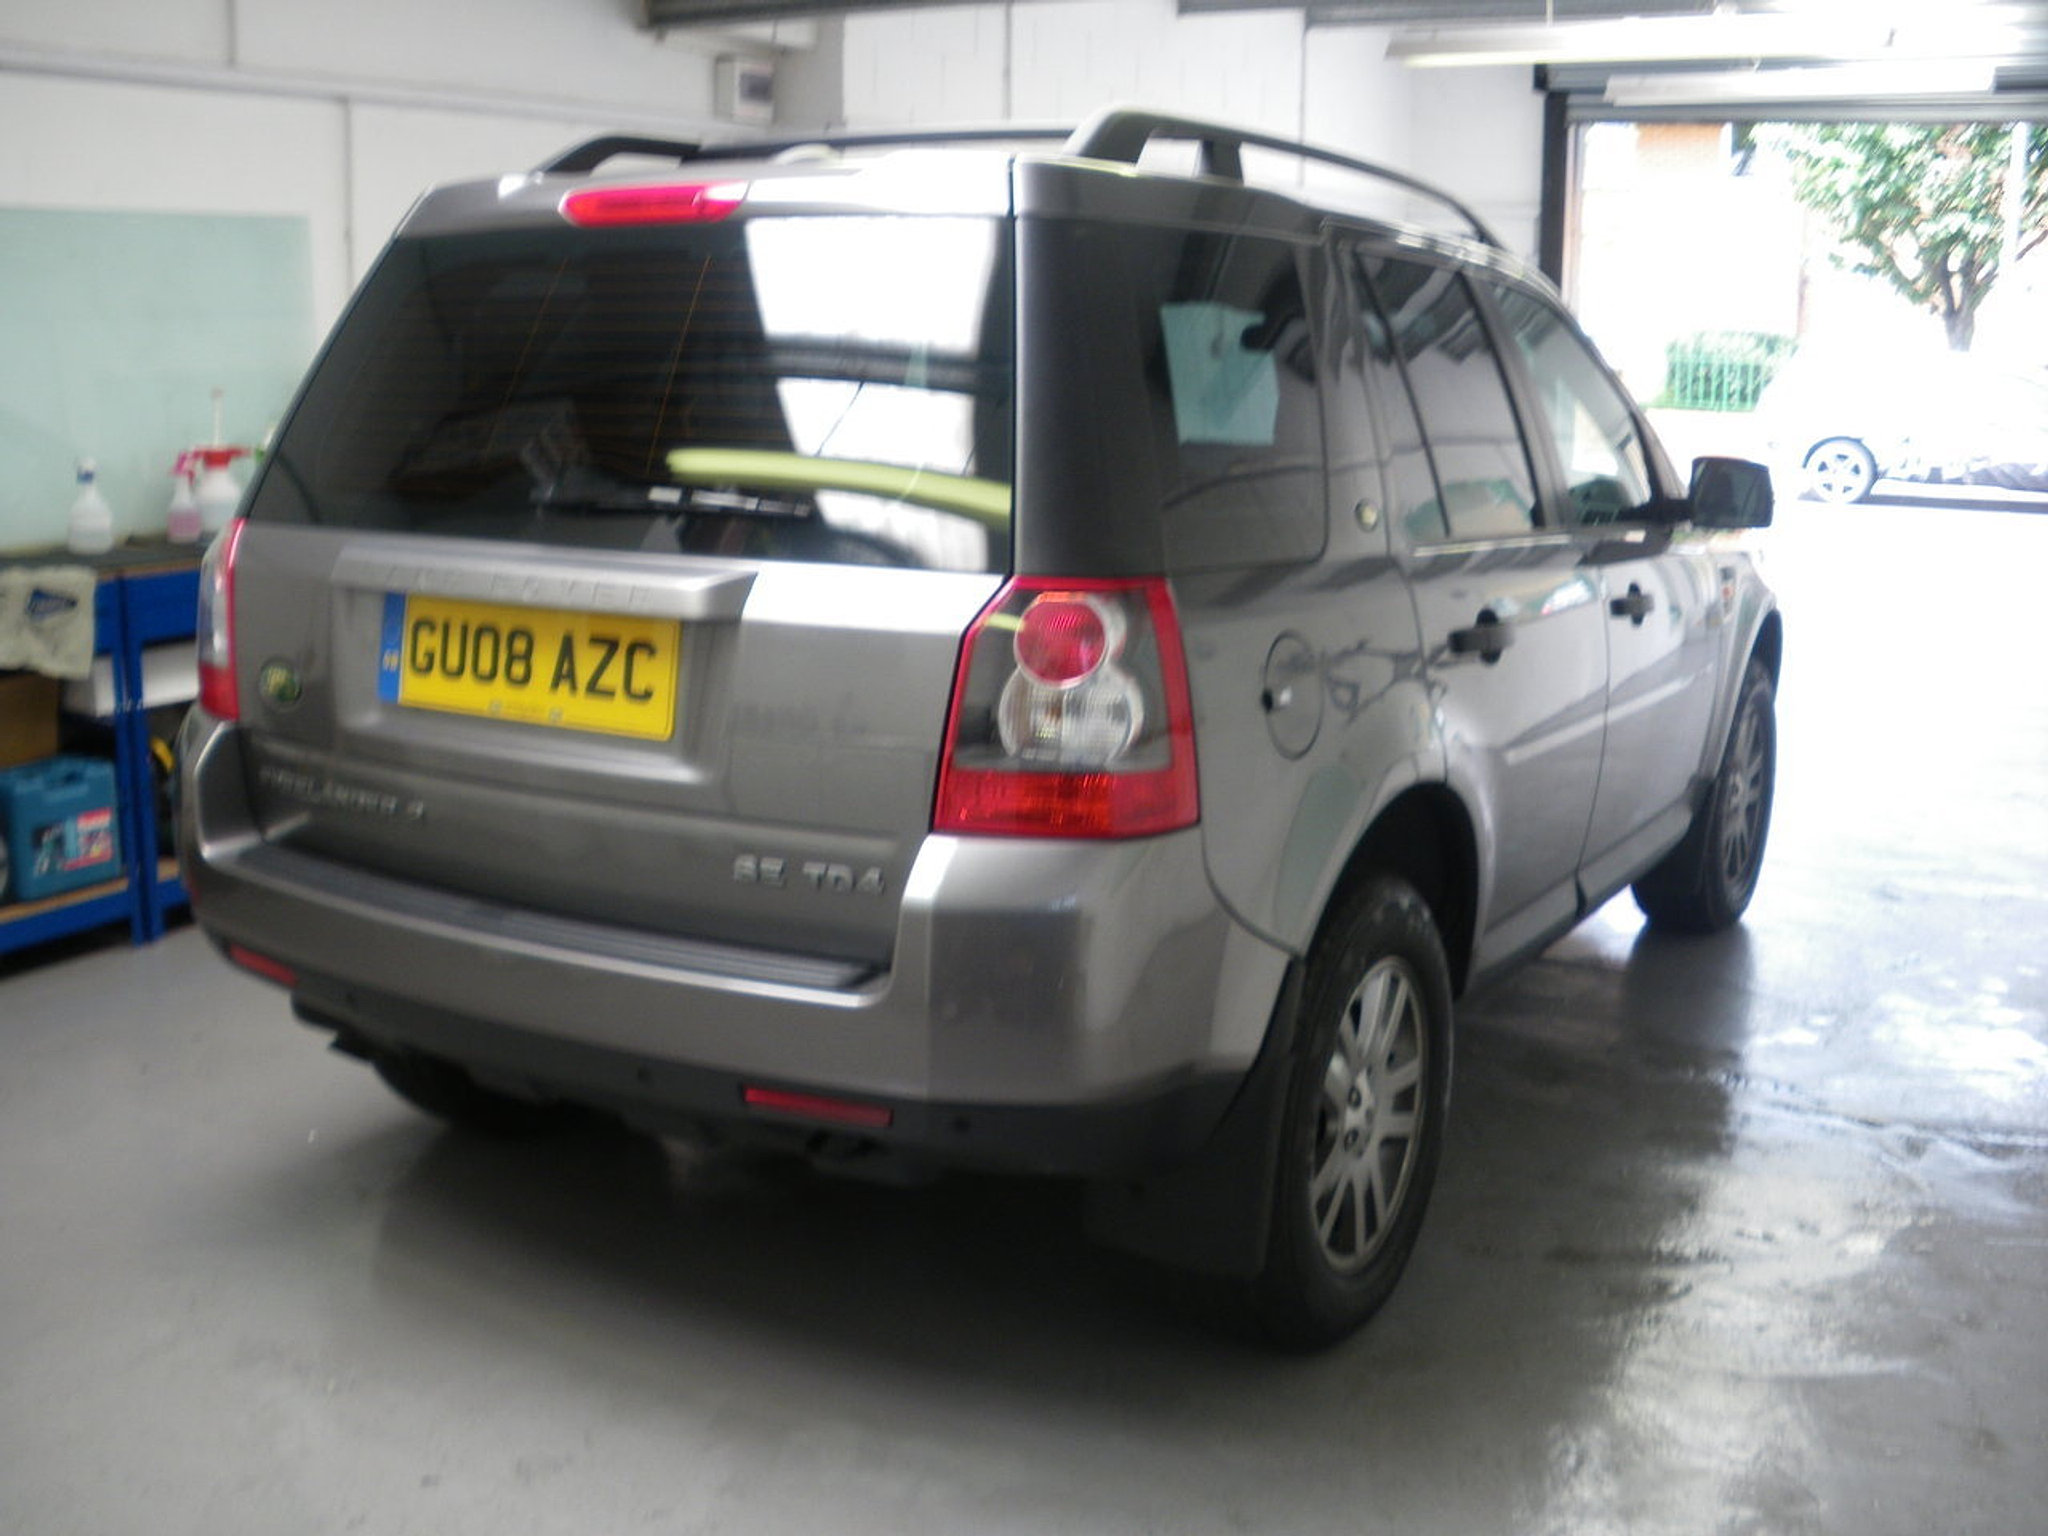 London Window Tinting >> Autoworx UK - Window Tinting - London - Bromley | LandRover Freelander 2 Window Tint